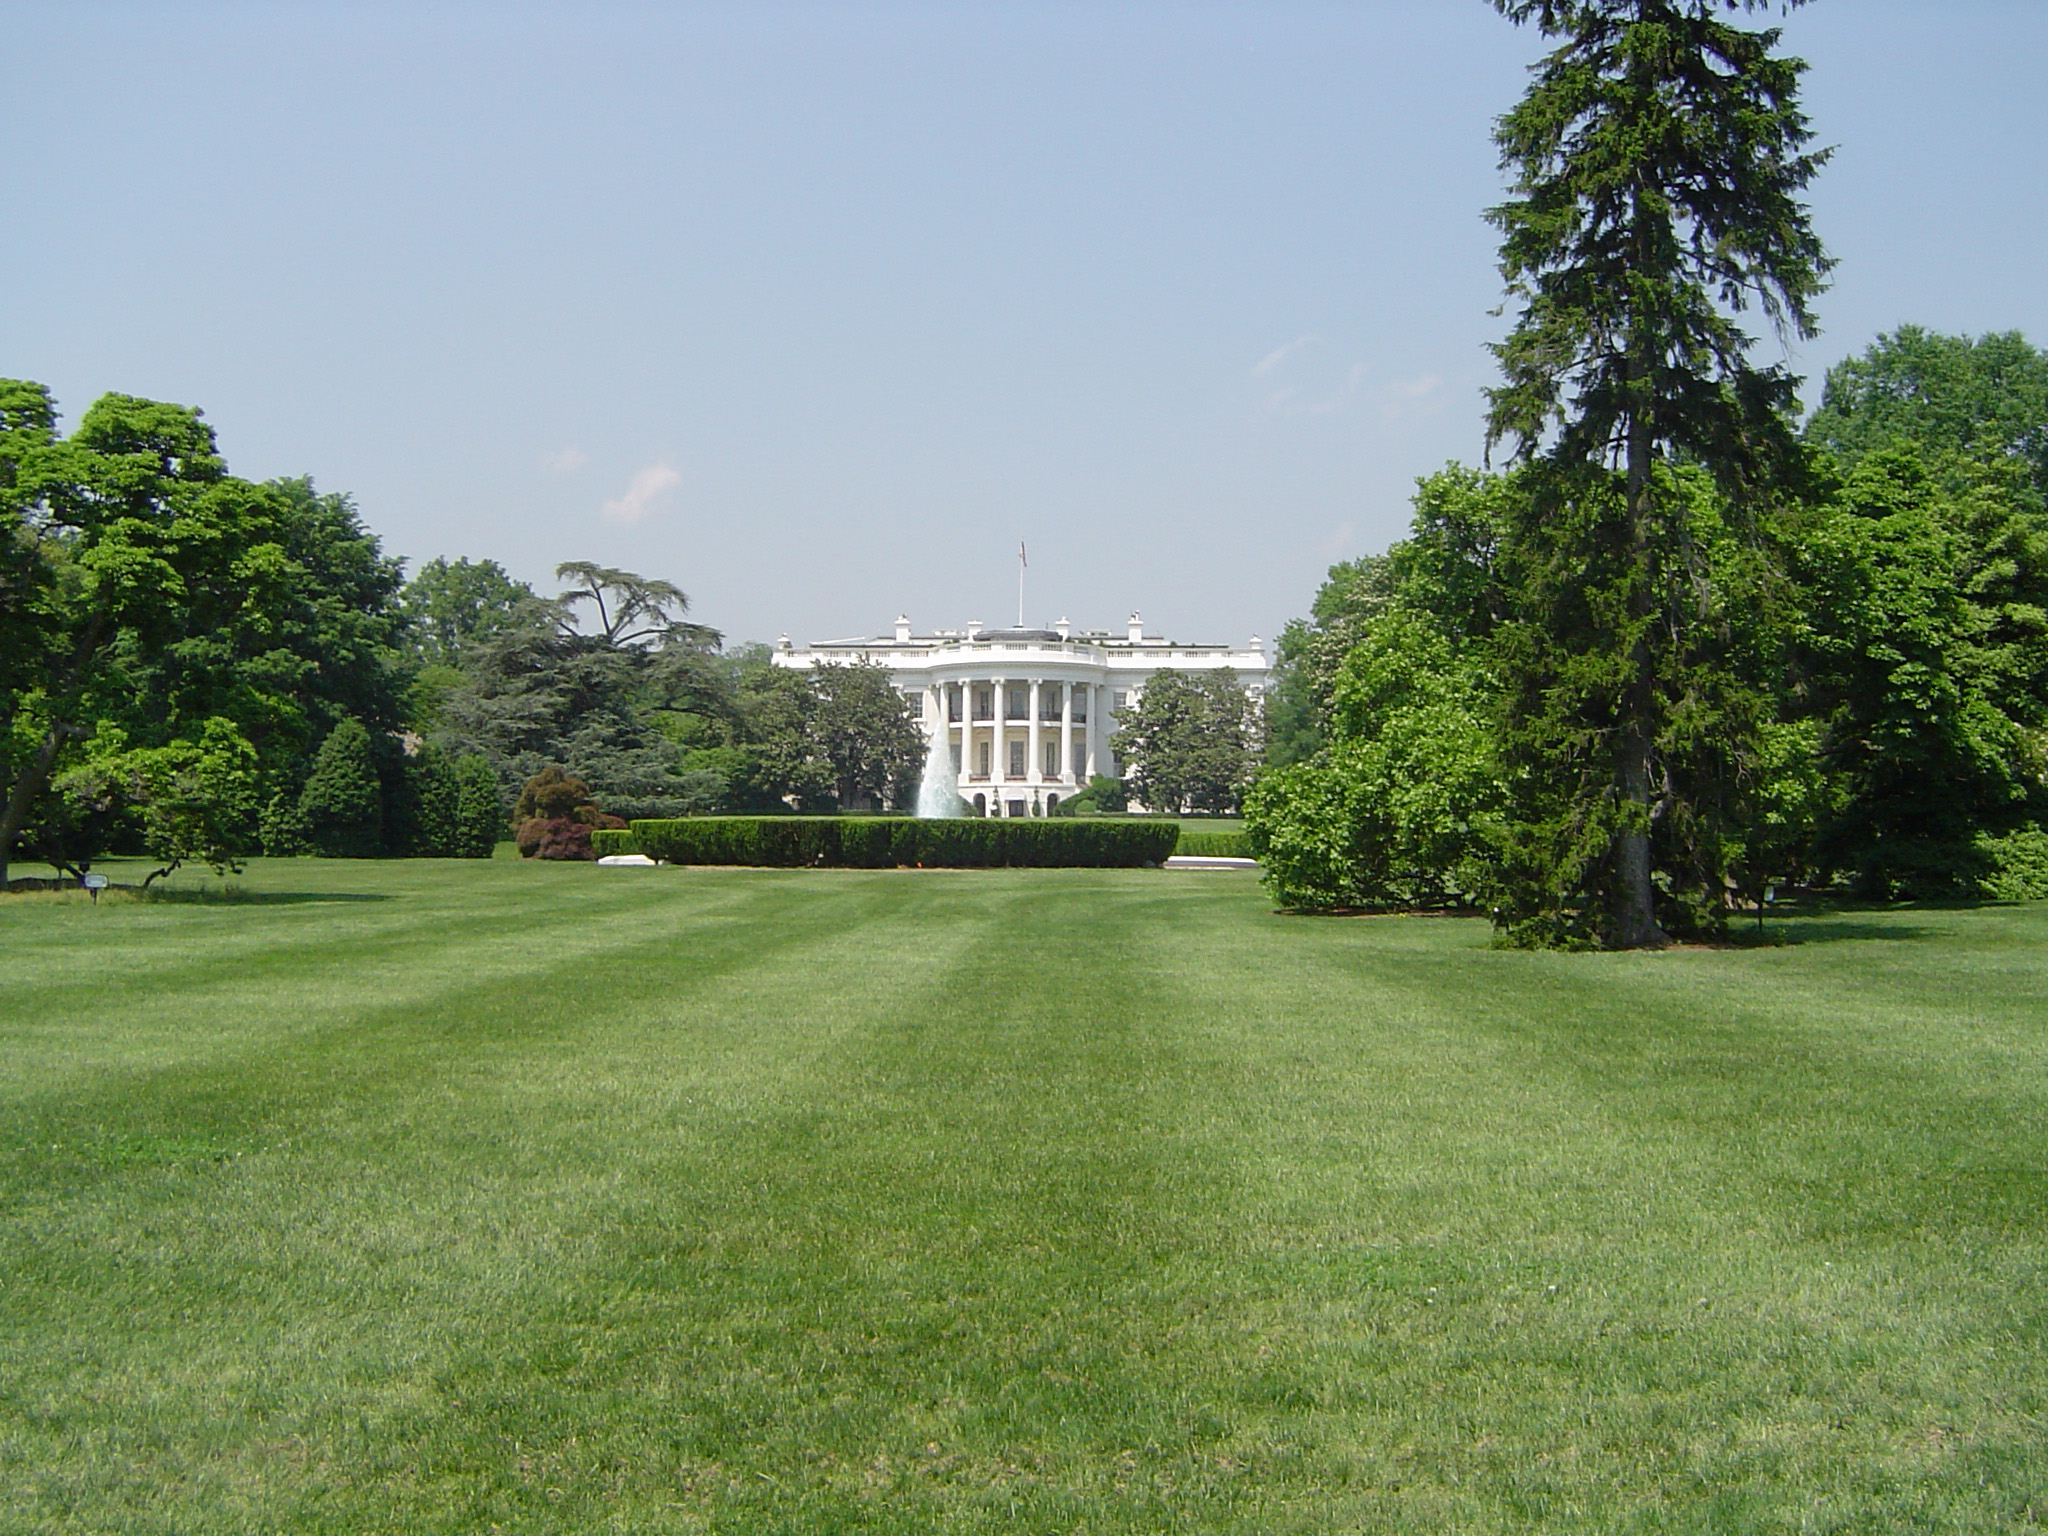 View across manicured lawns of the exterior facade of The White House, Washigton DC, USA